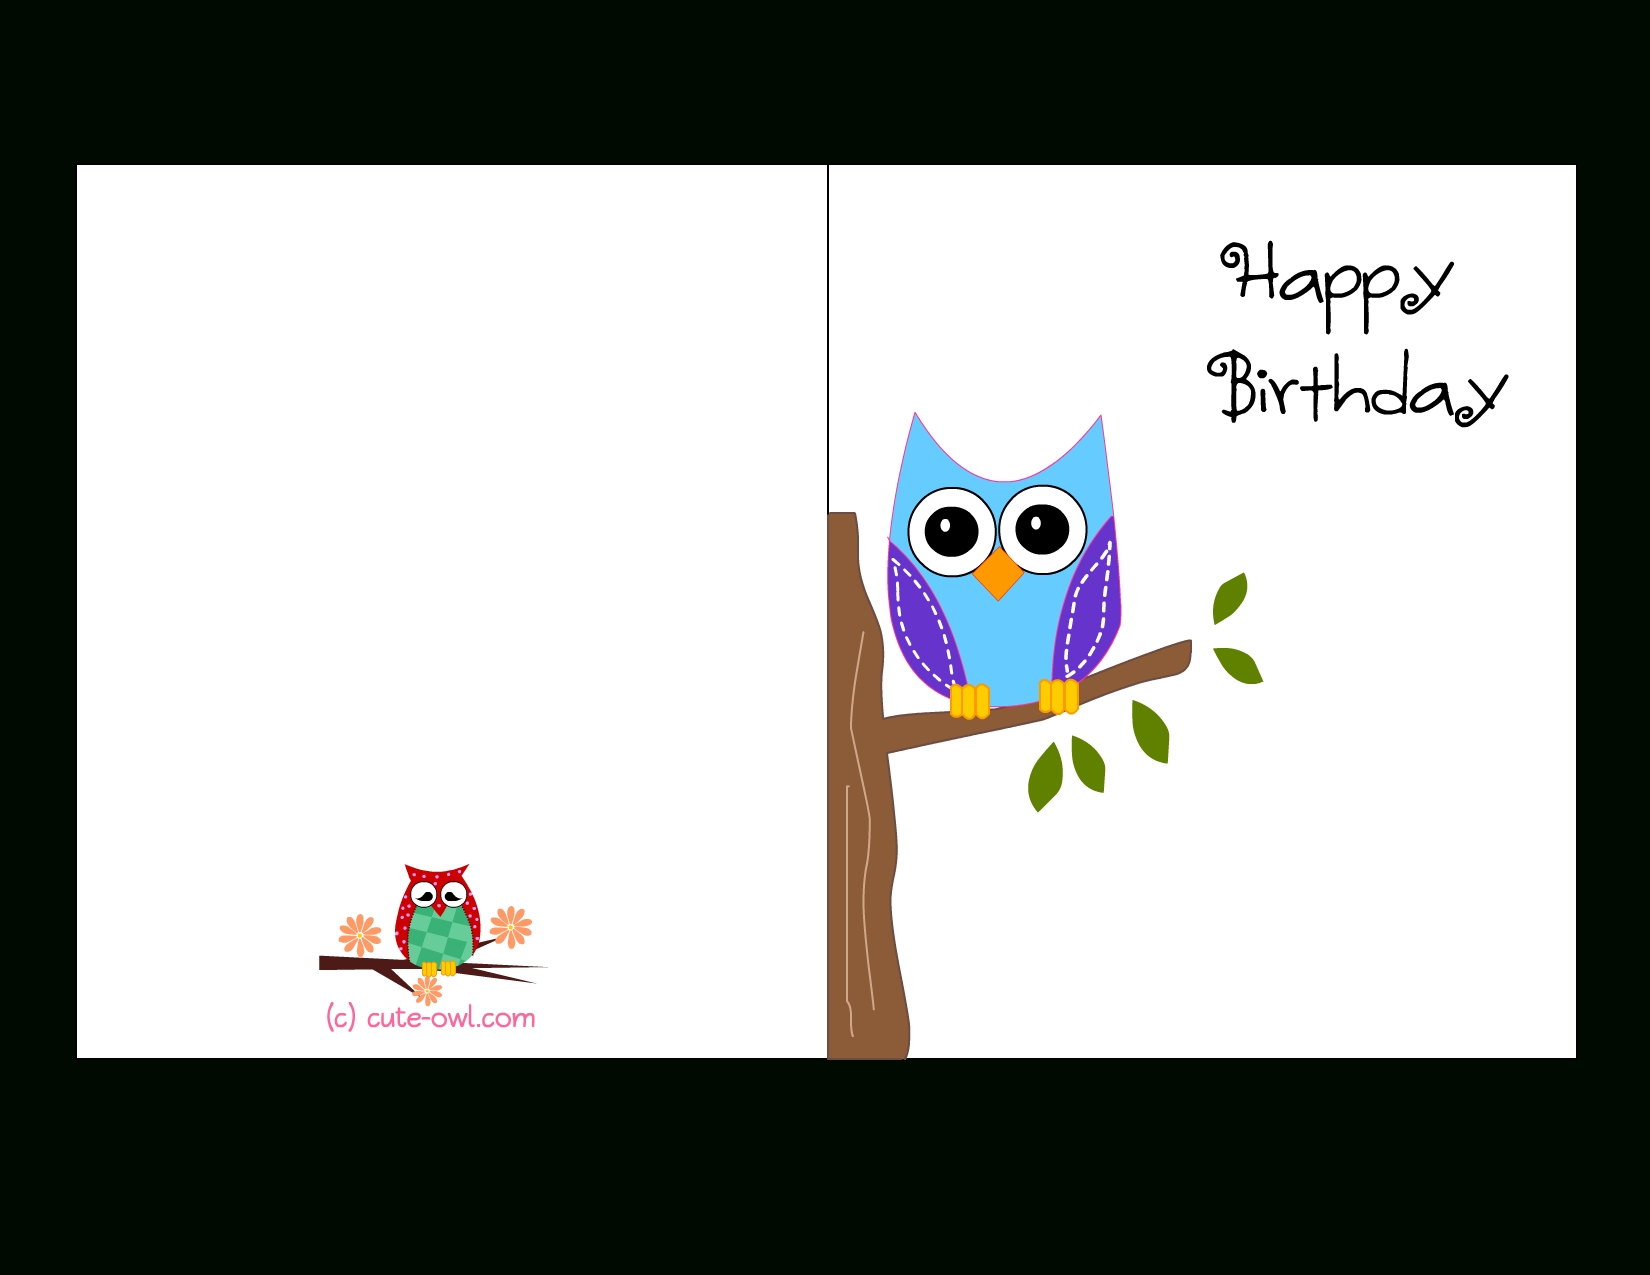 free printable birthday cards for boys ; free-printable-cute-owl-birthday-cards-pertaining-to-printable-birthday-cards